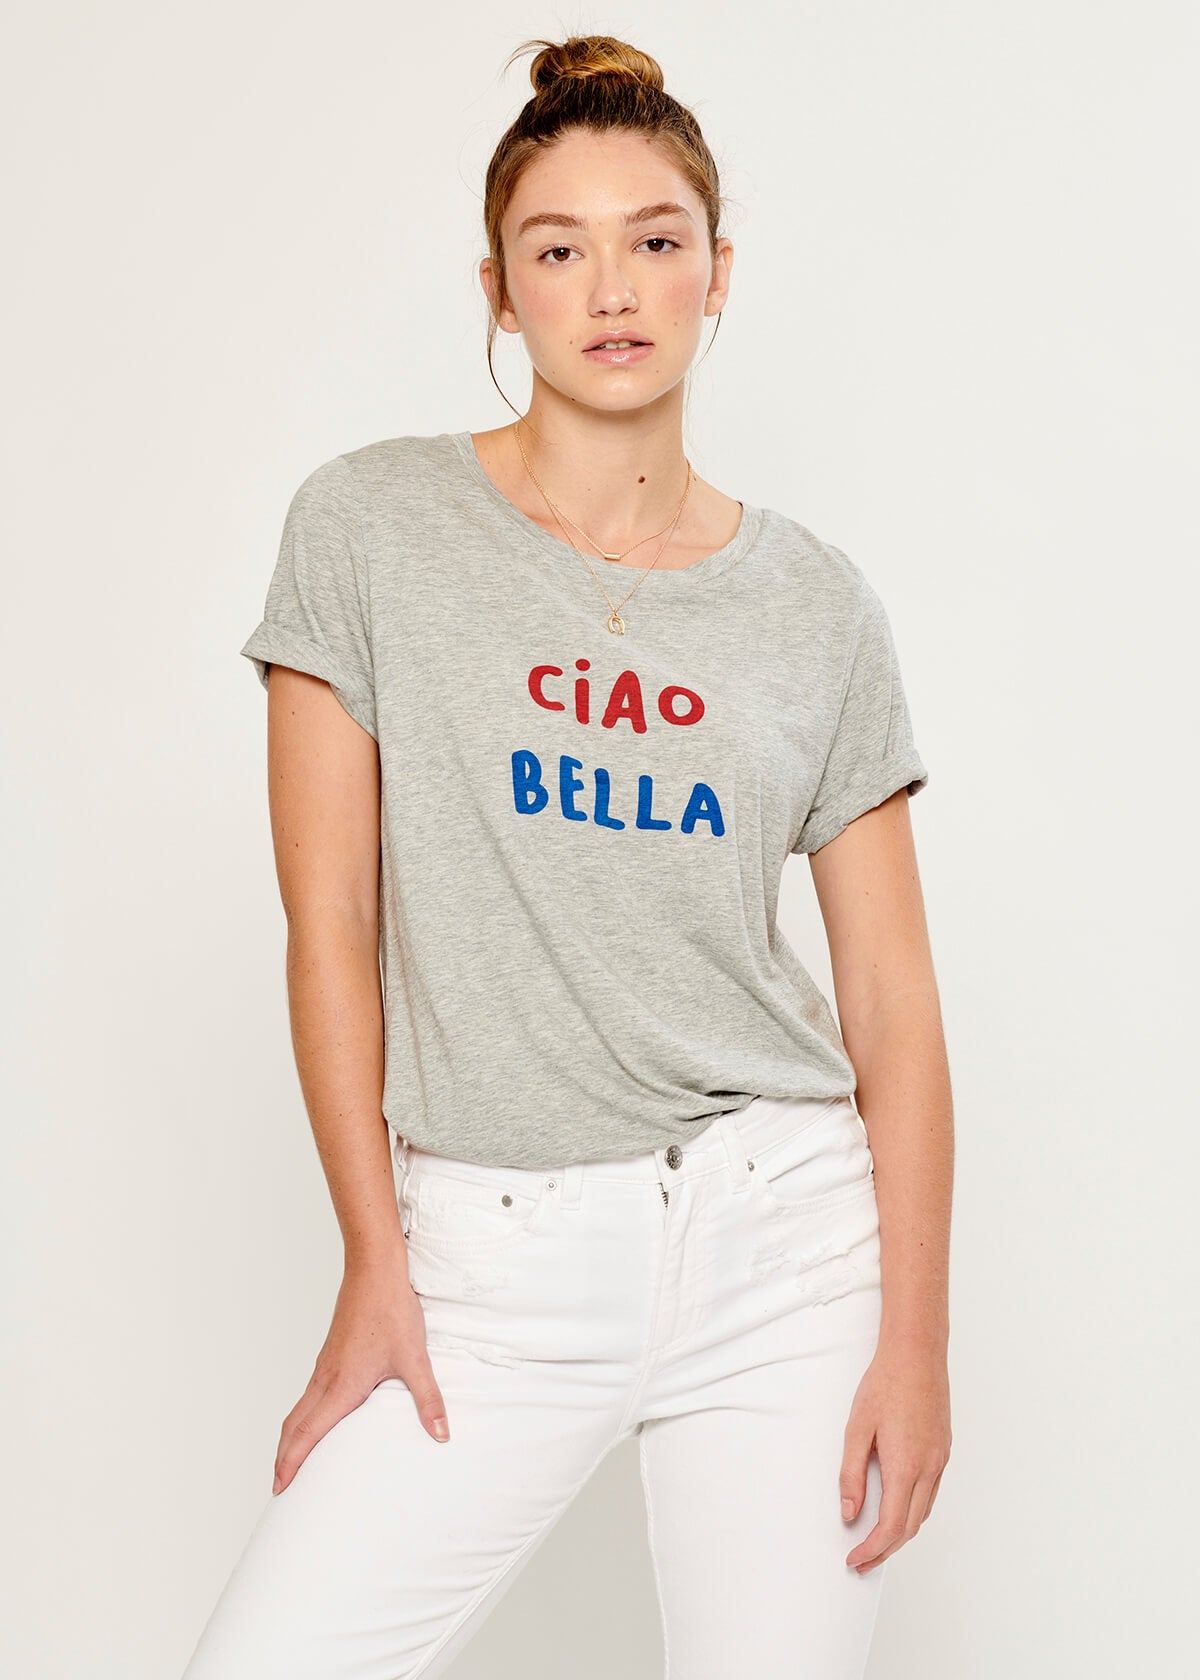 Lola - Loose Tee - Ciao Bella - Gray